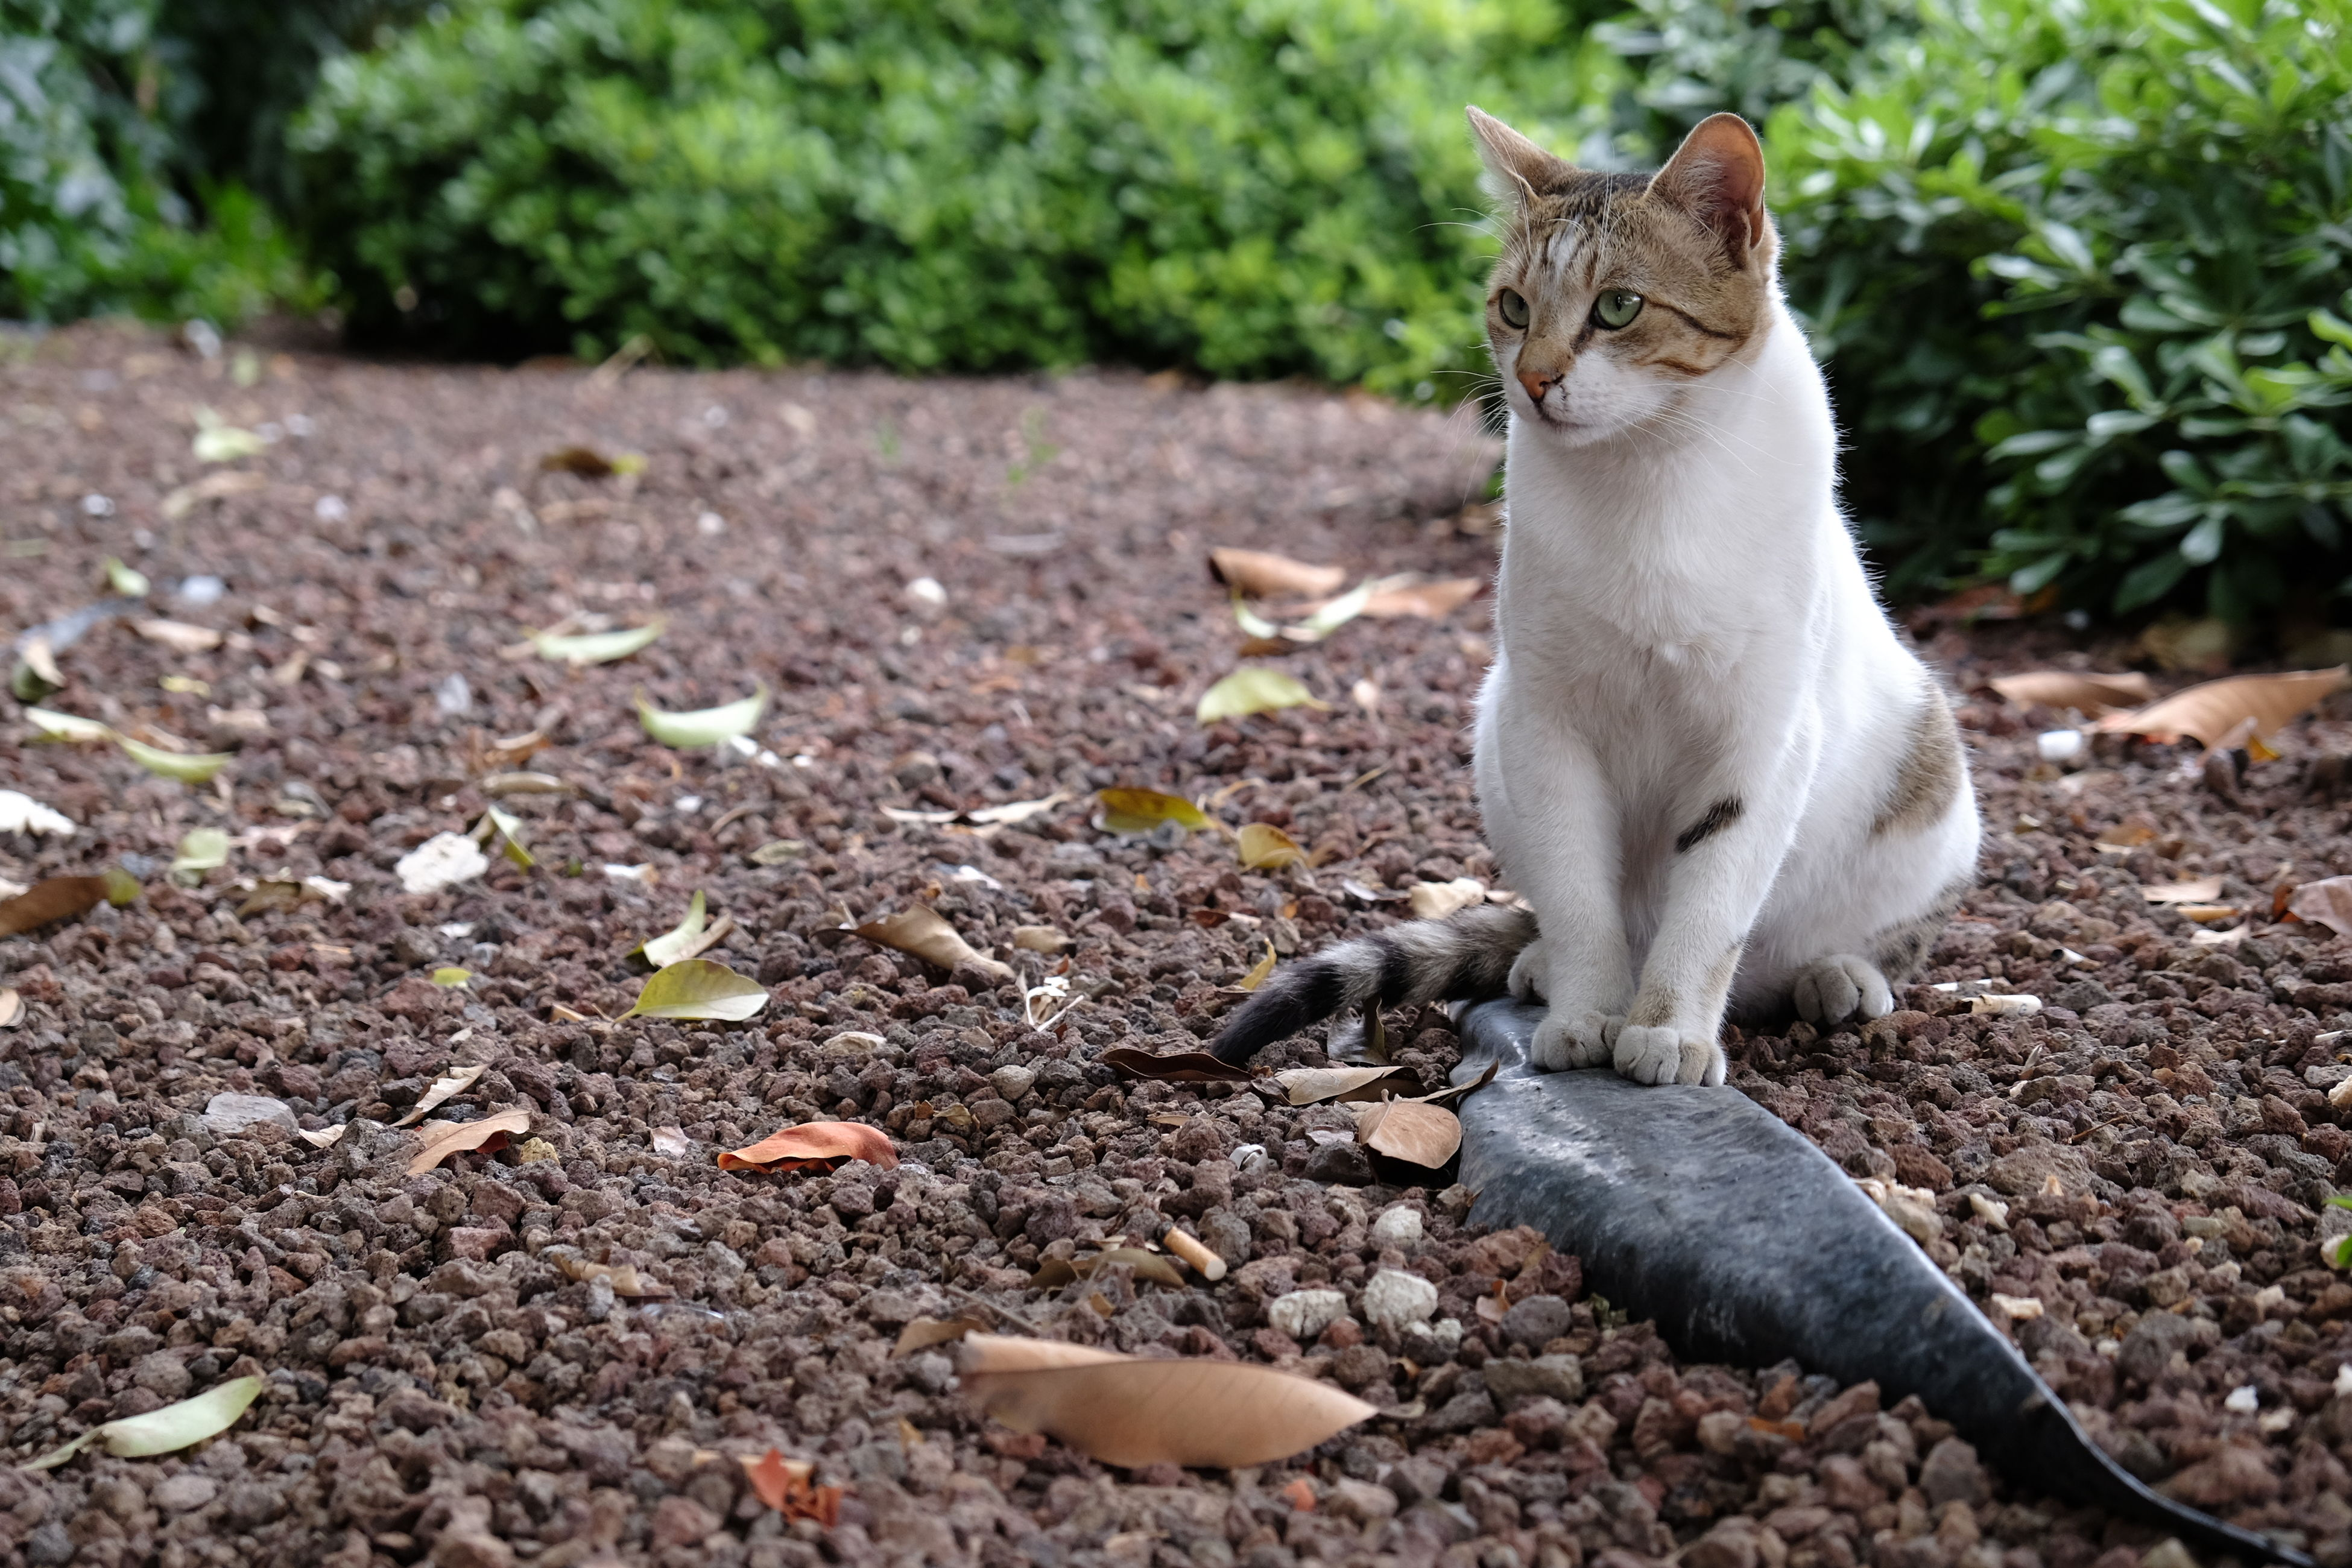 animal themes, one animal, leaf, domestic animals, field, pets, mammal, full length, nature, day, outdoors, ground, cat, no people, wildlife, domestic cat, street, looking away, selective focus, animals in the wild